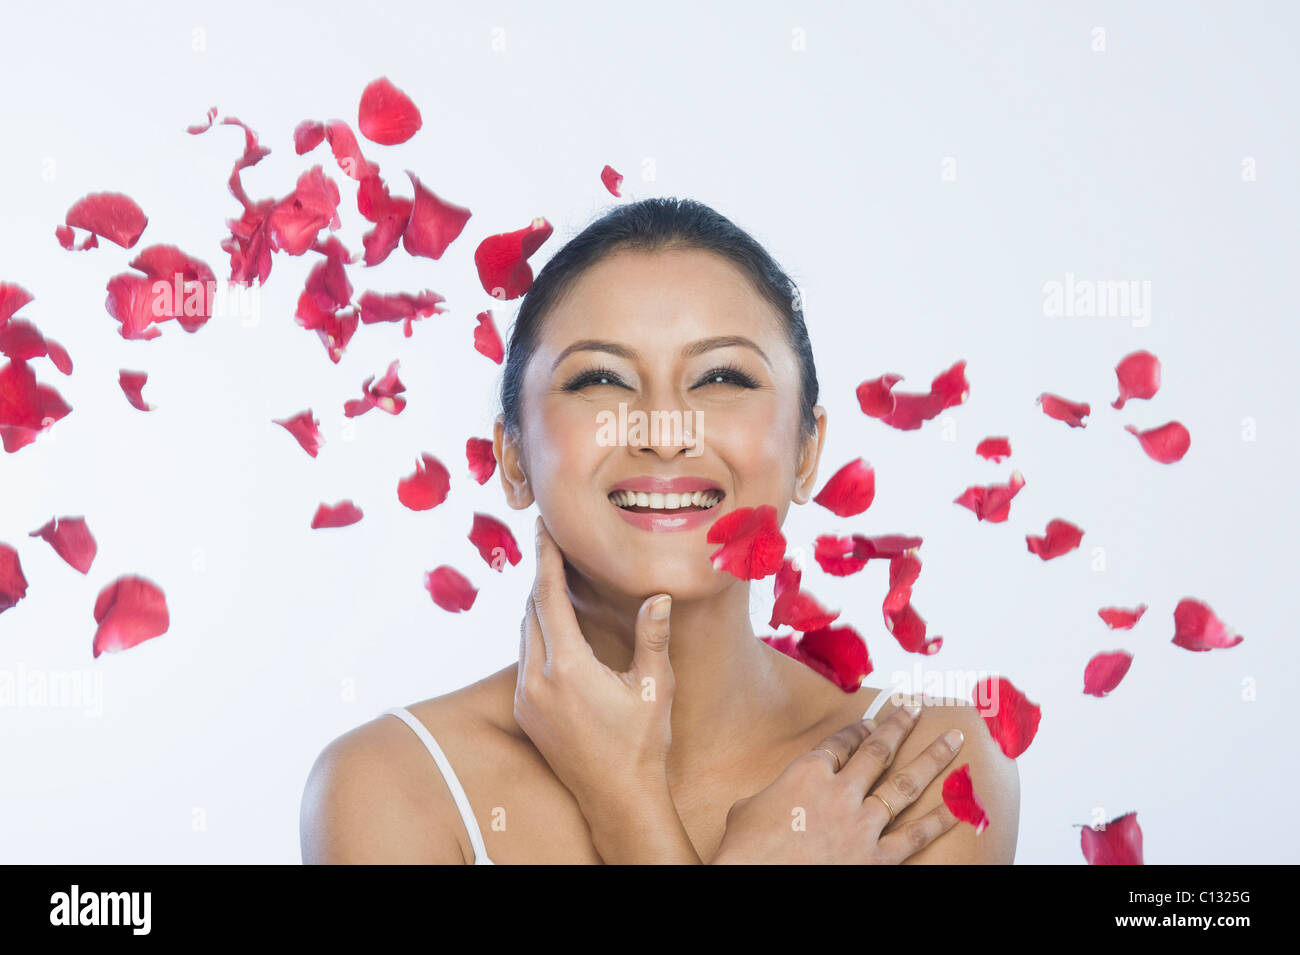 Rose petals falling on a woman - Stock Image